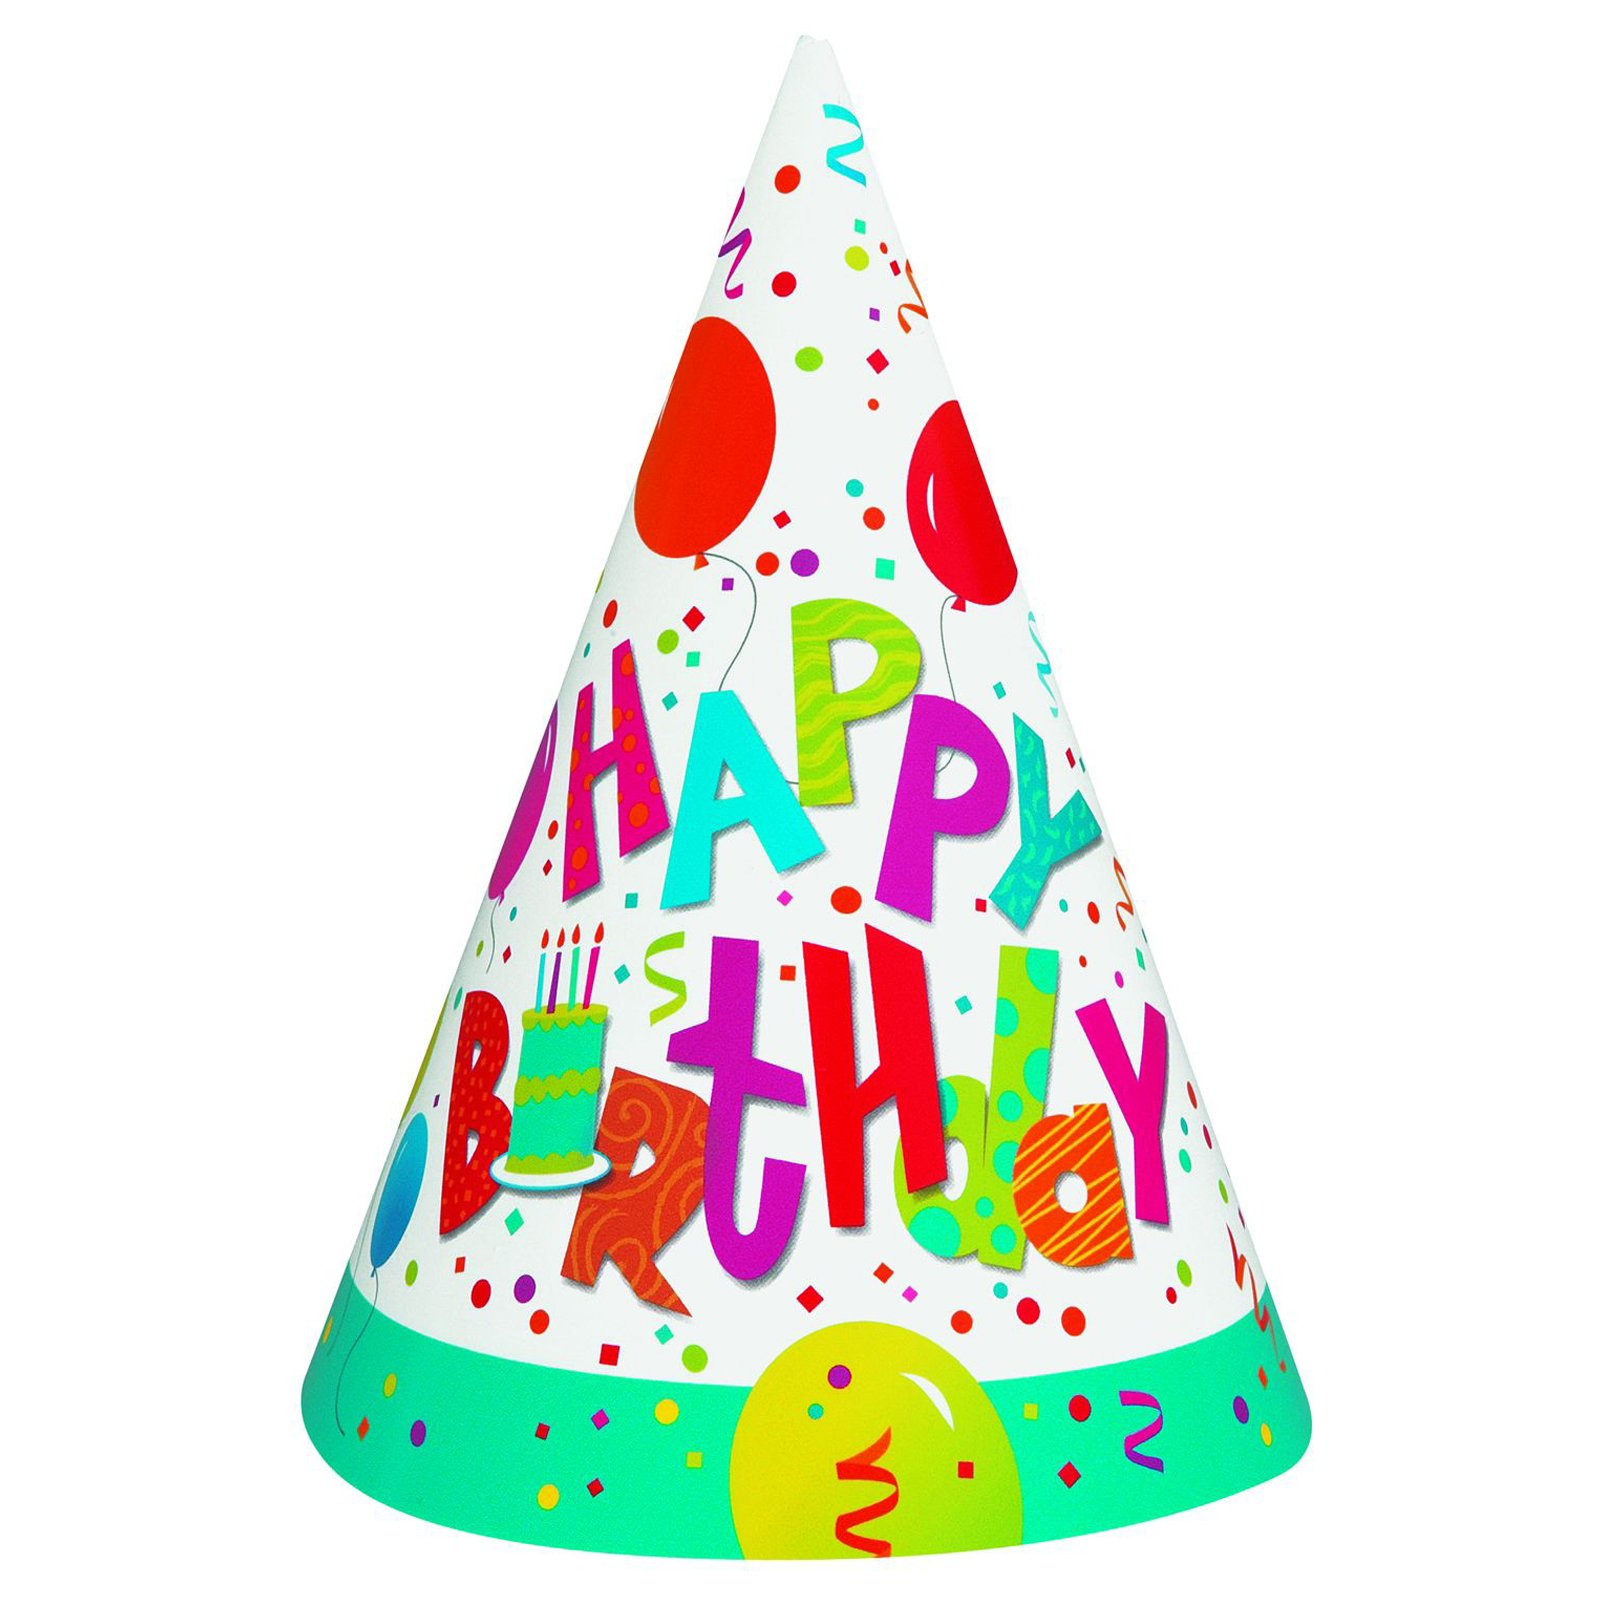 hight resolution of birthday hat transparent background clipart library free clipart